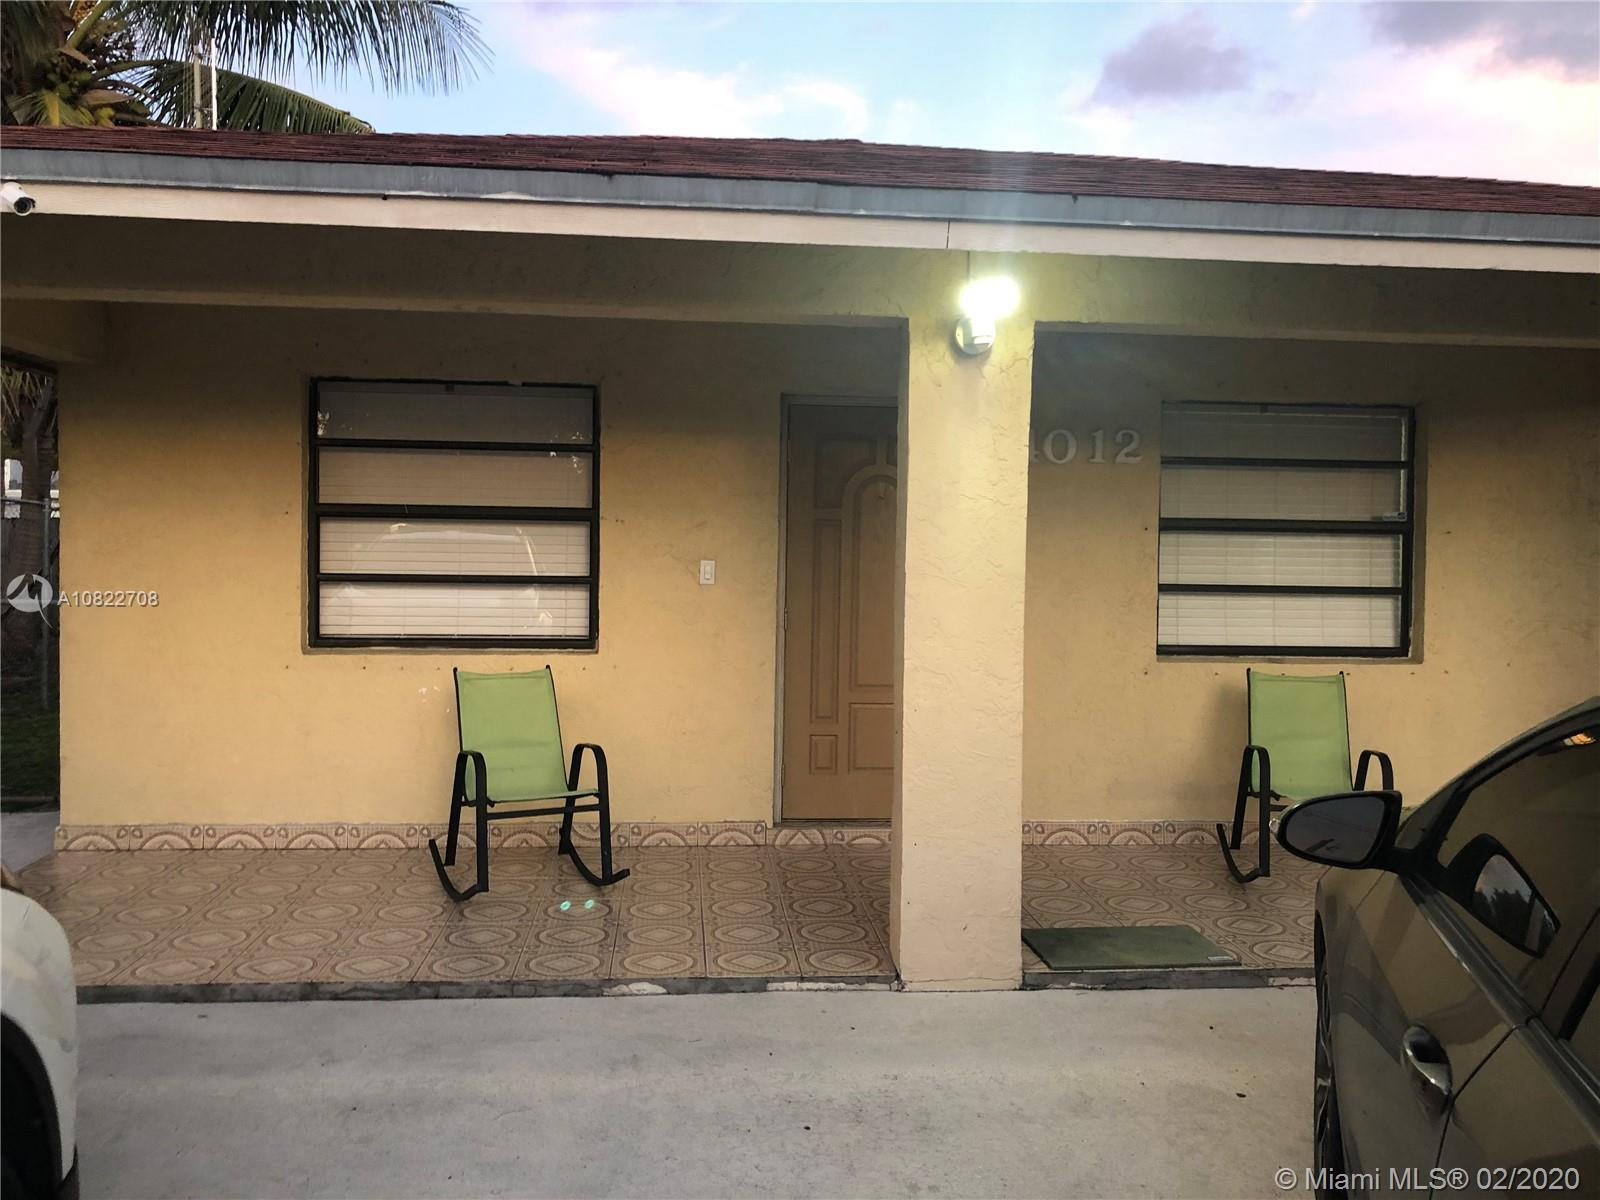 Beautiful house located in a central location near the airport,school,shopping centers and the beach